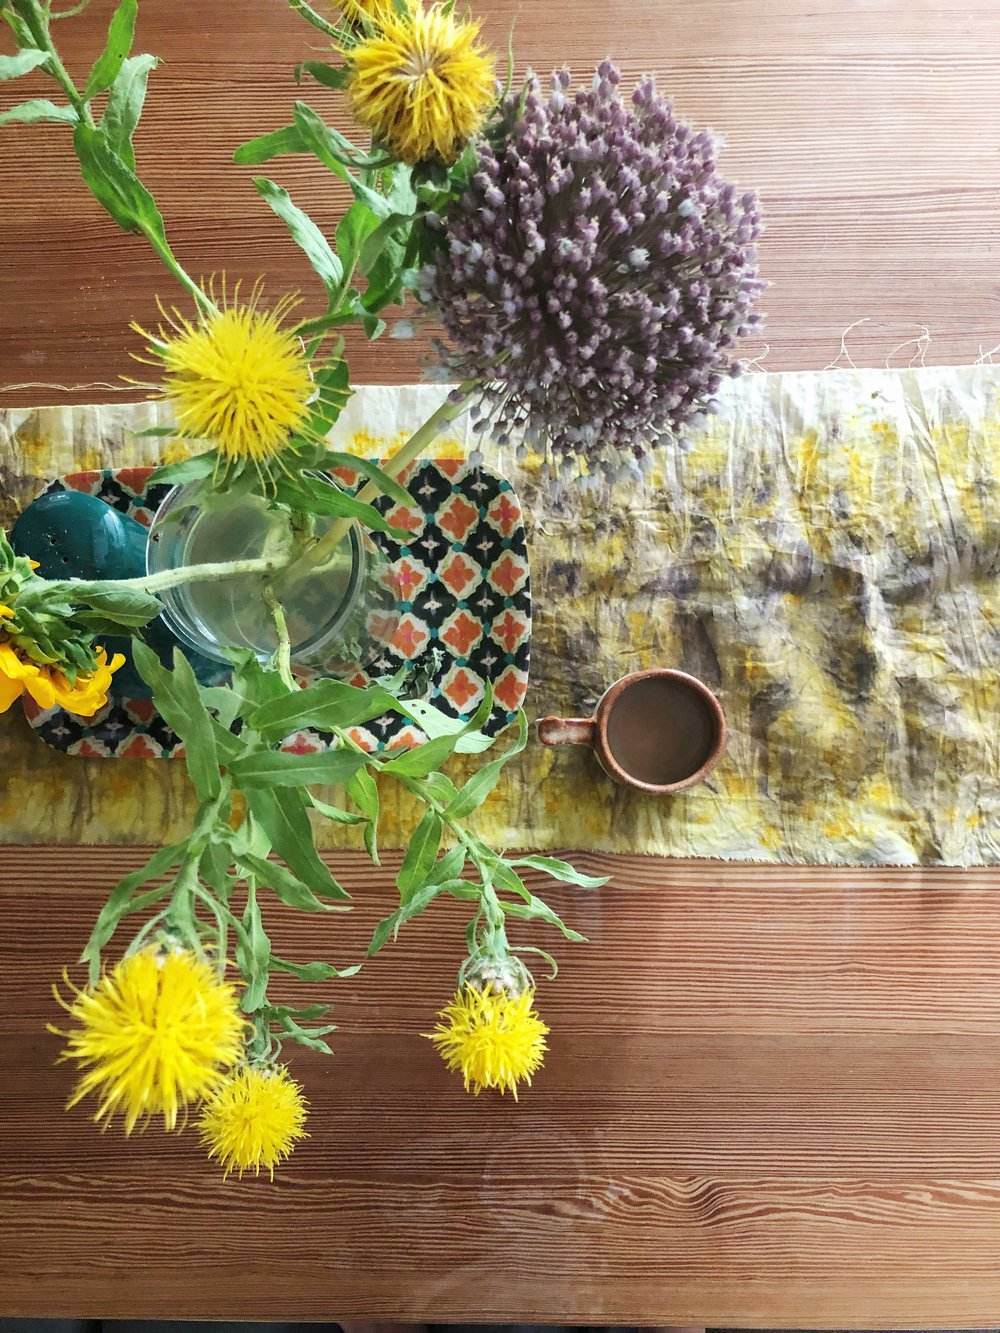 The table runner I made at House Sparrow's plant dyeing workshop last week makes me smile when I catch a glimpse of it during the day. Also, my Foxy Pots mug is a nice companion to it. PS I need to wax my table to get rid of those rings! Ha. -Palmer